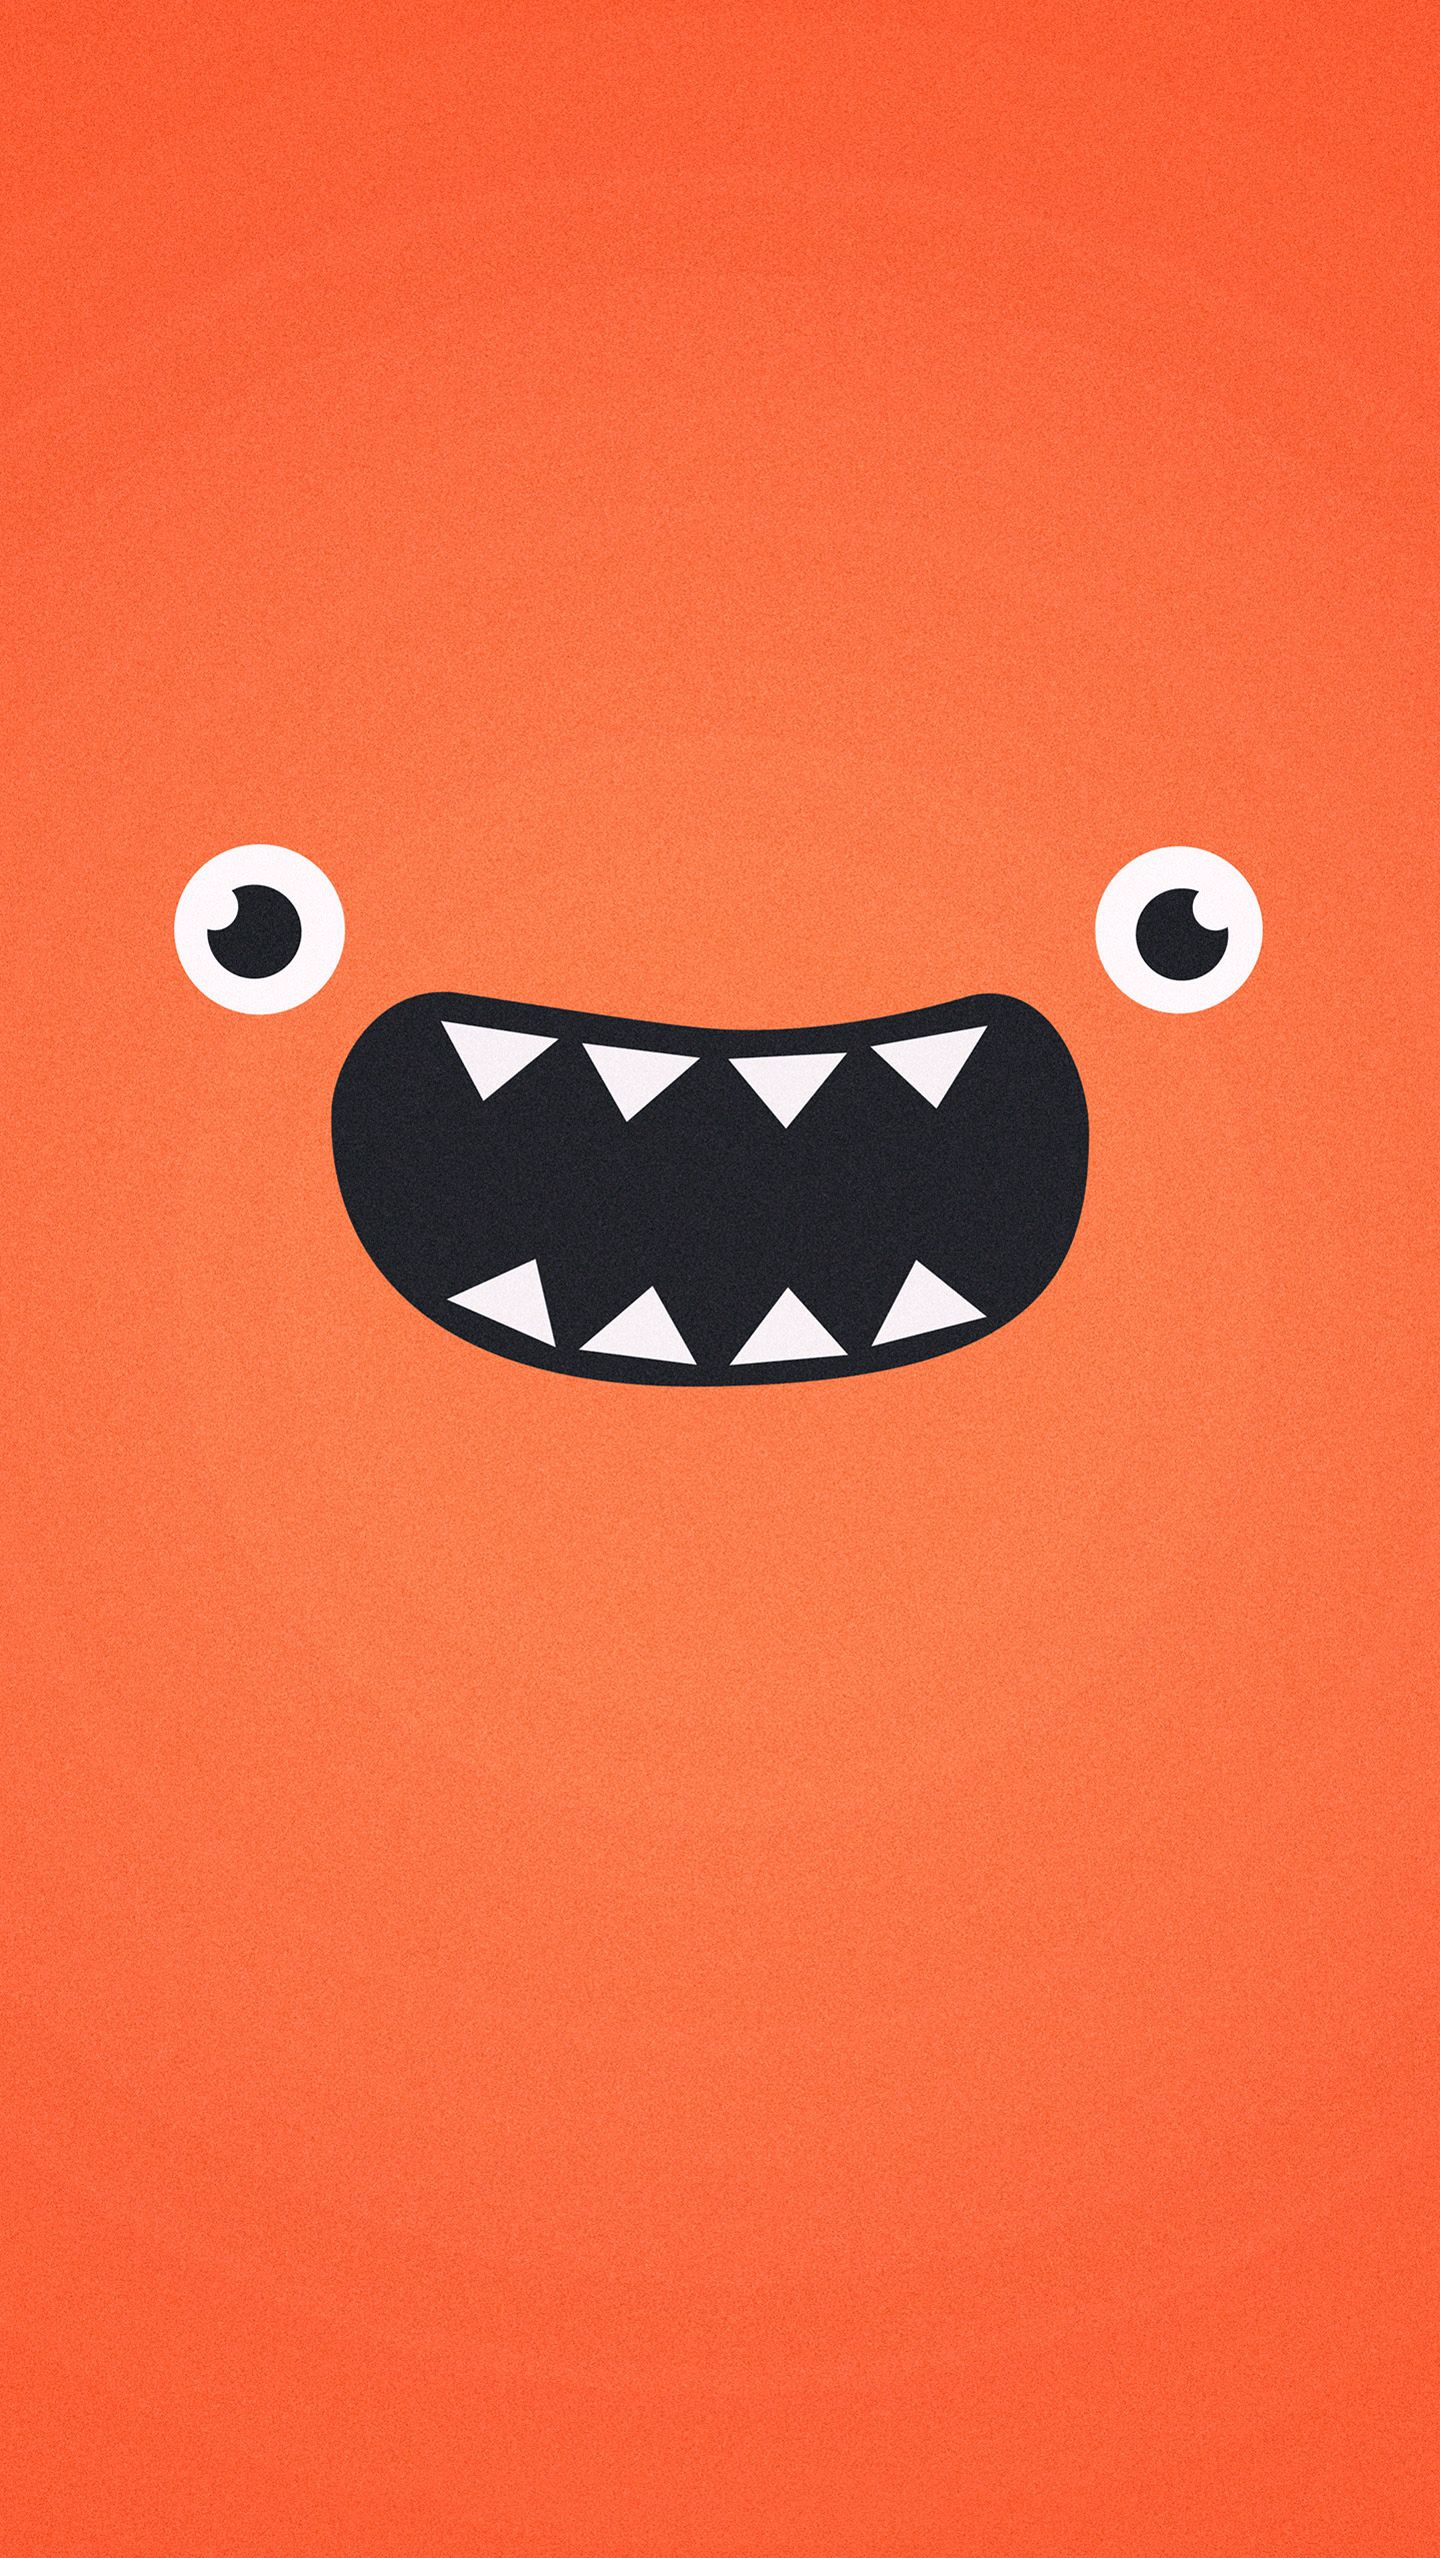 Cute Monster Smile iPhone Wallpaper